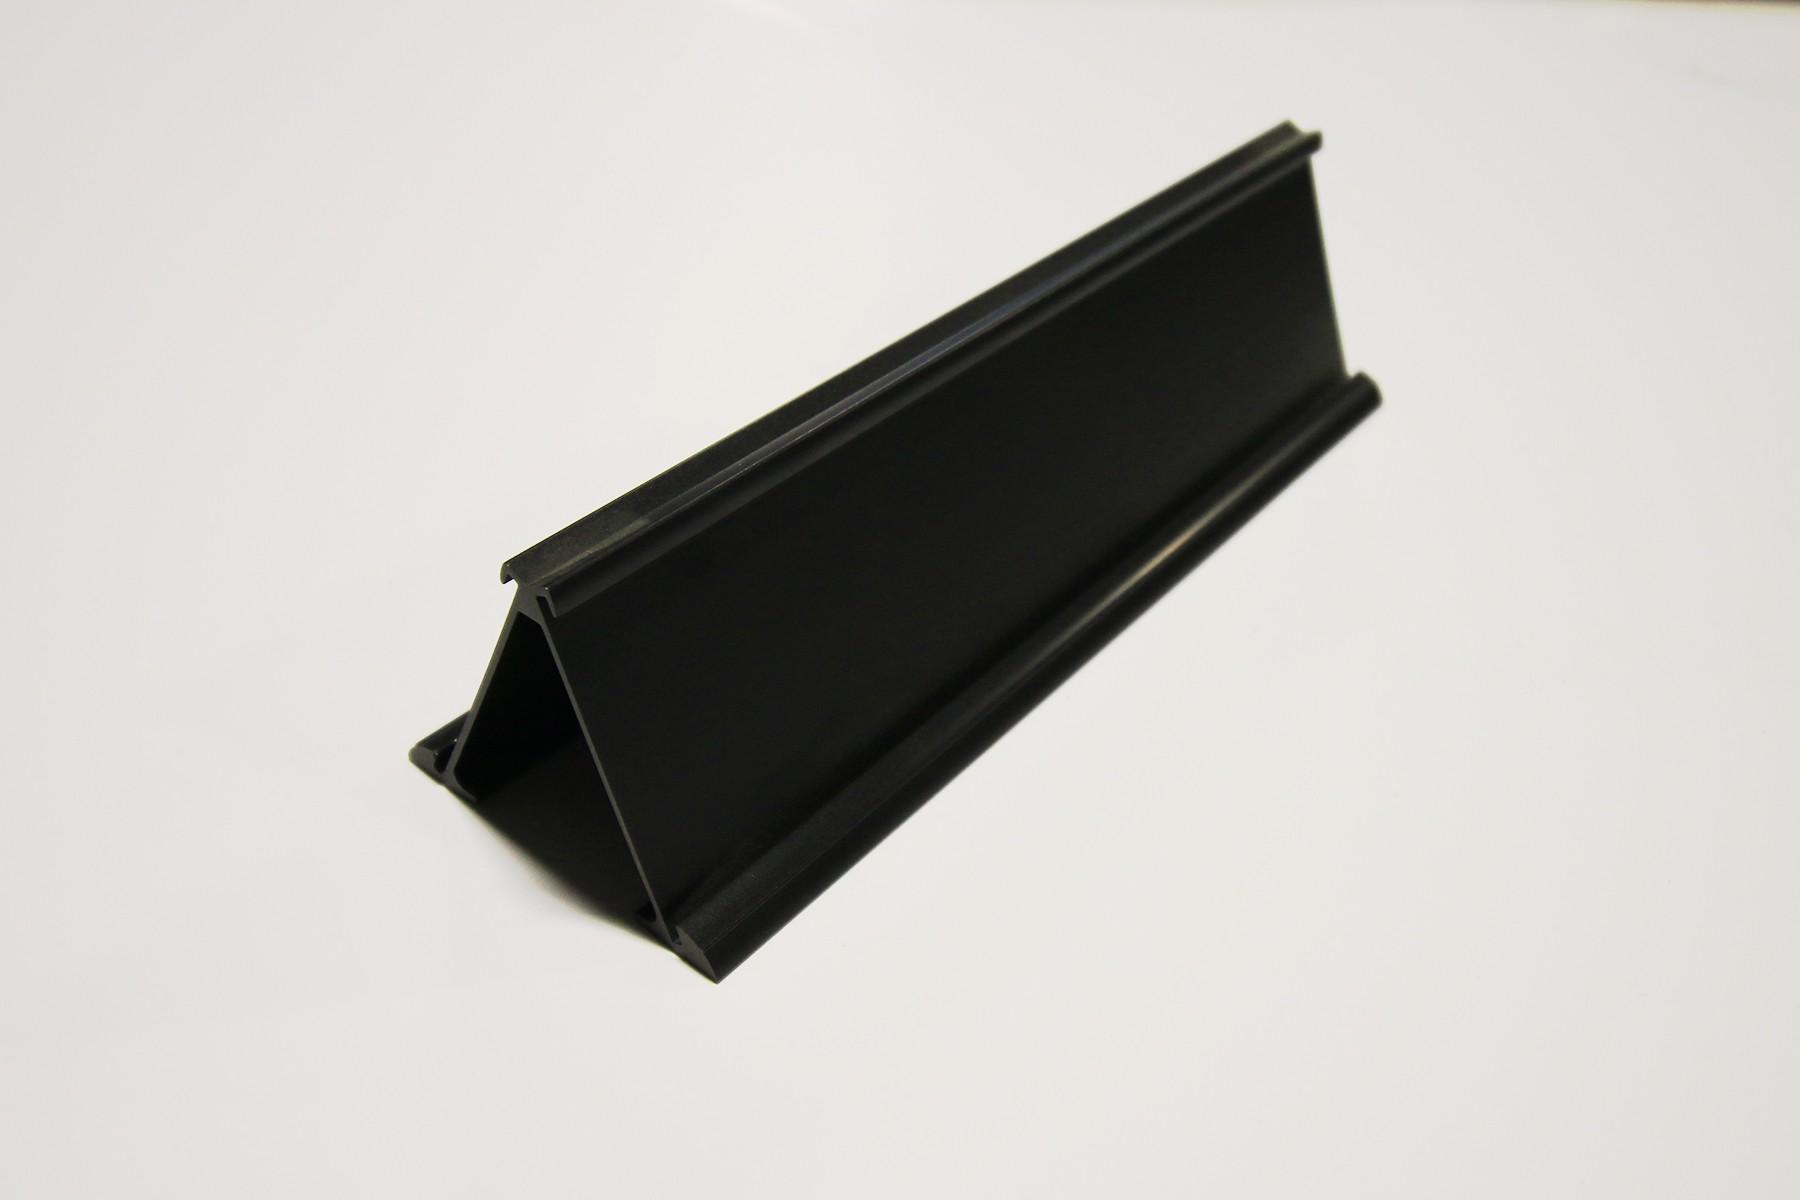 "2"" x 1/16"" x 10"" Double-Sided Desk Holder, Black"